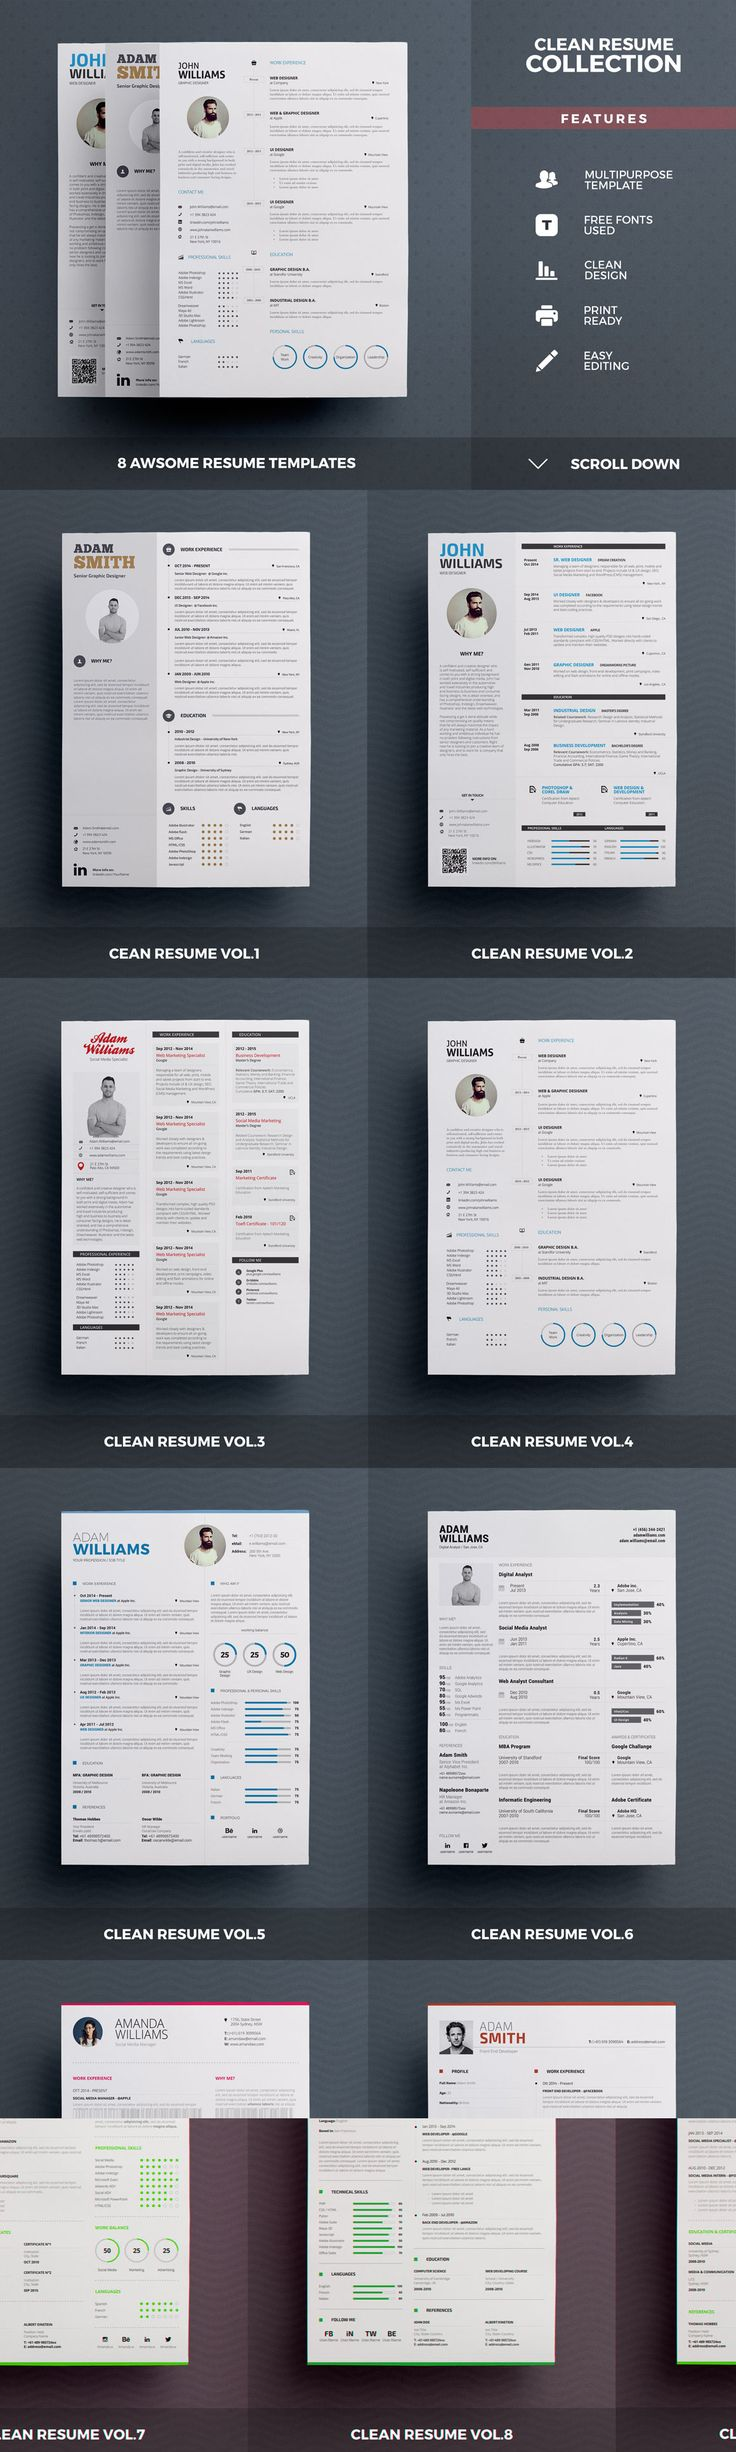 Best Selling Resumes - All-in-One by The Resume Creator on @creativemarket